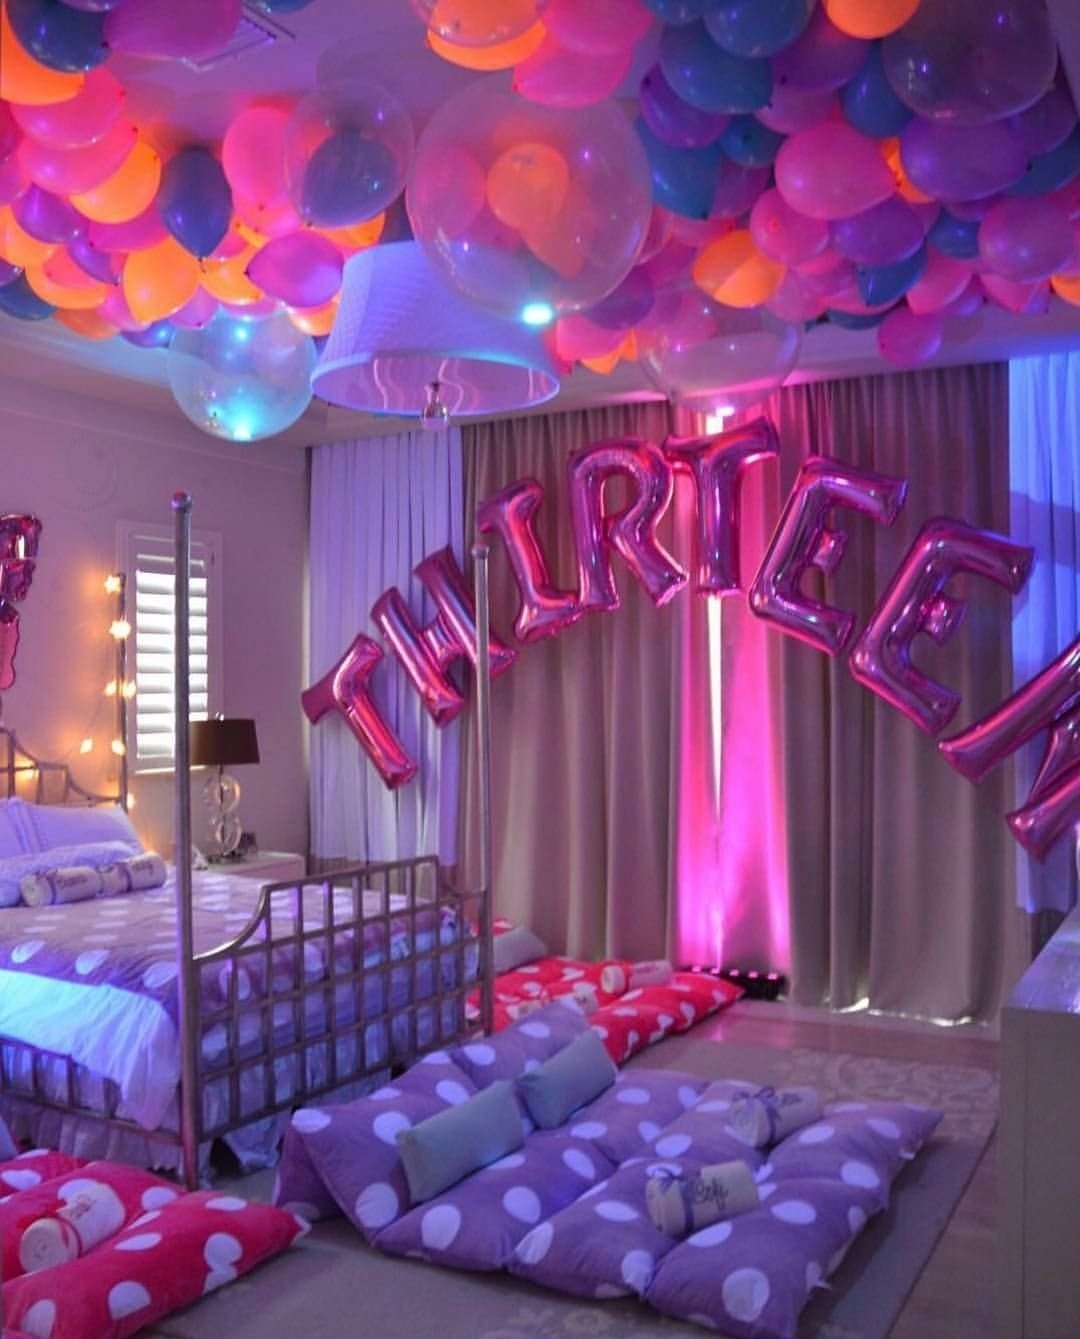 10 Trendy Birthday Party Ideas For A 13 Year Old pinti money on cah day pinterest birthdays sweet 16 3 2020